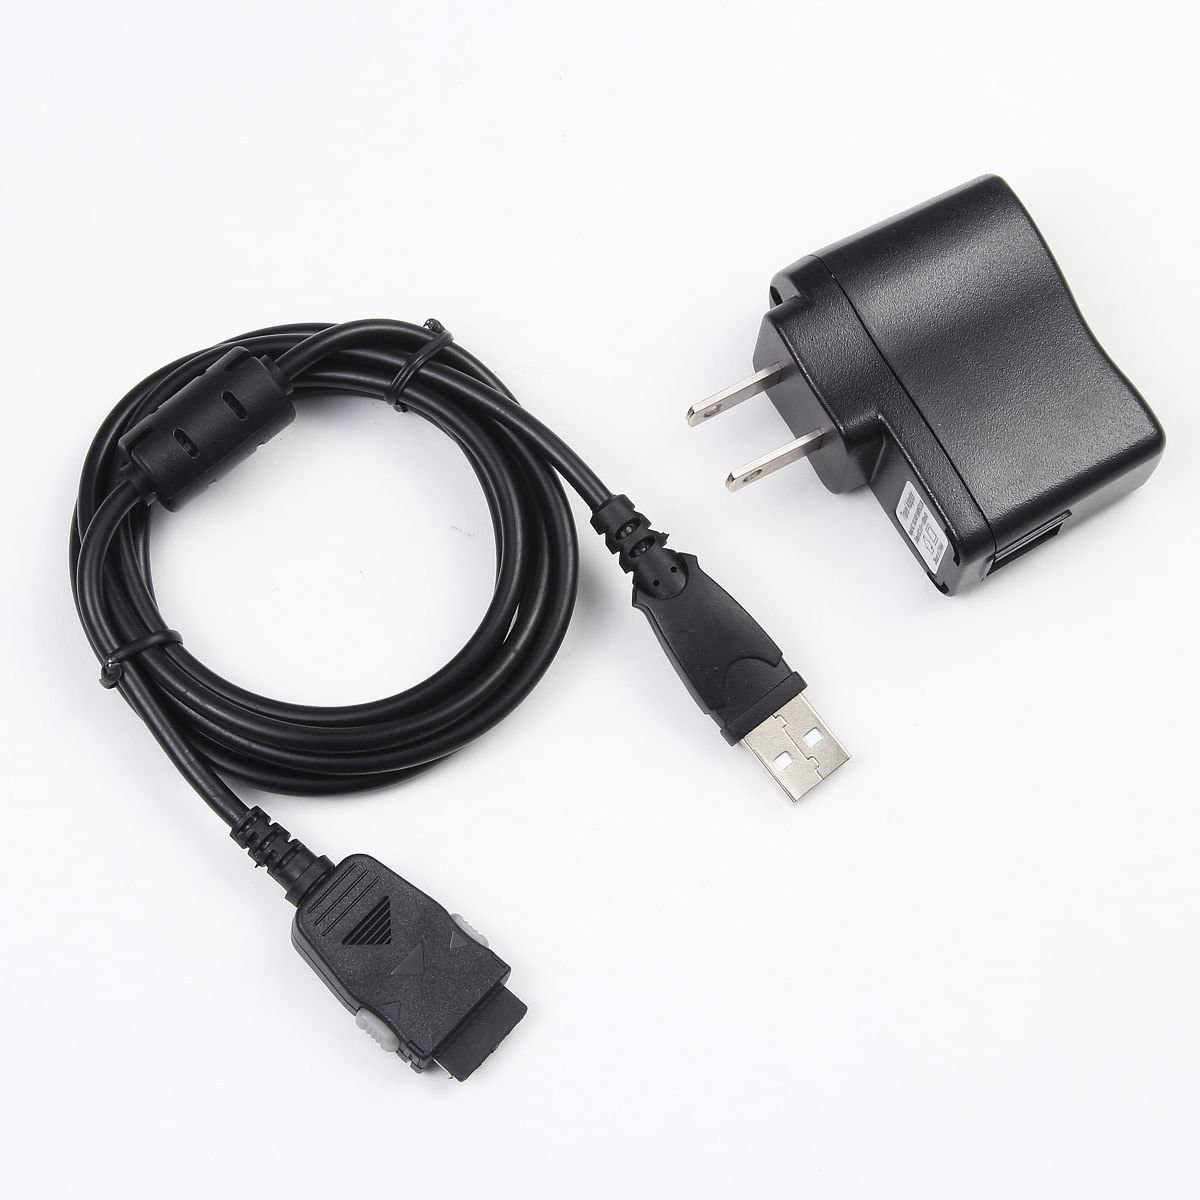 EPtech USB AC Power Charger Adapter+PC Cord For Samsung YP-K3 YP-K5 YP-S3 YP-S5 J//Q//A//Z